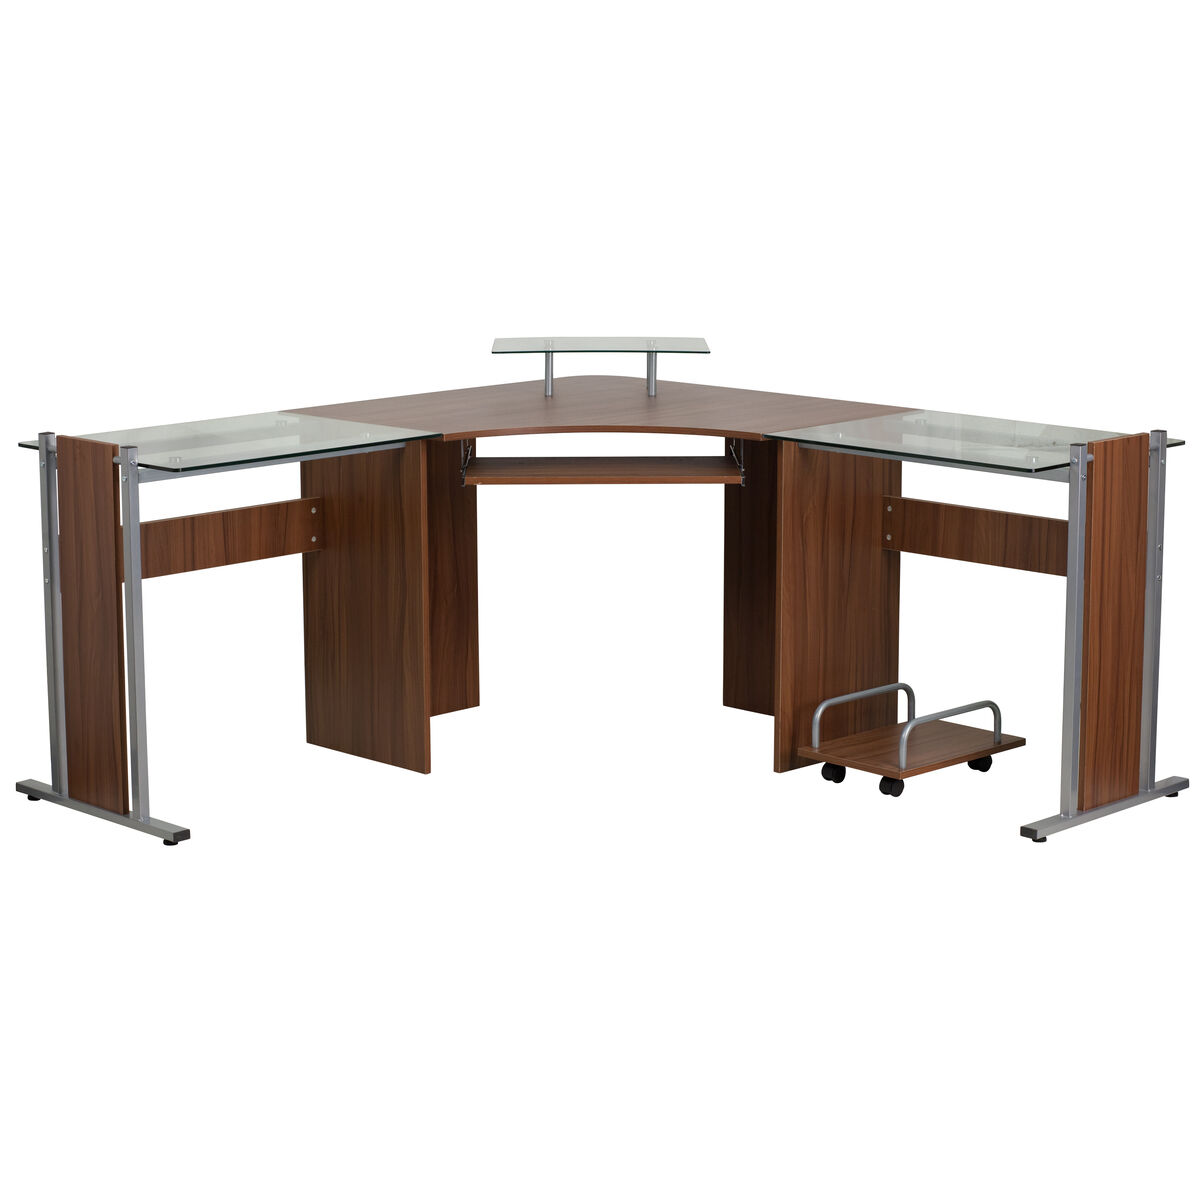 Our Teakwood Laminate Corner Desk With Pull Out Keyboard Tray And Cpu Cart Is On